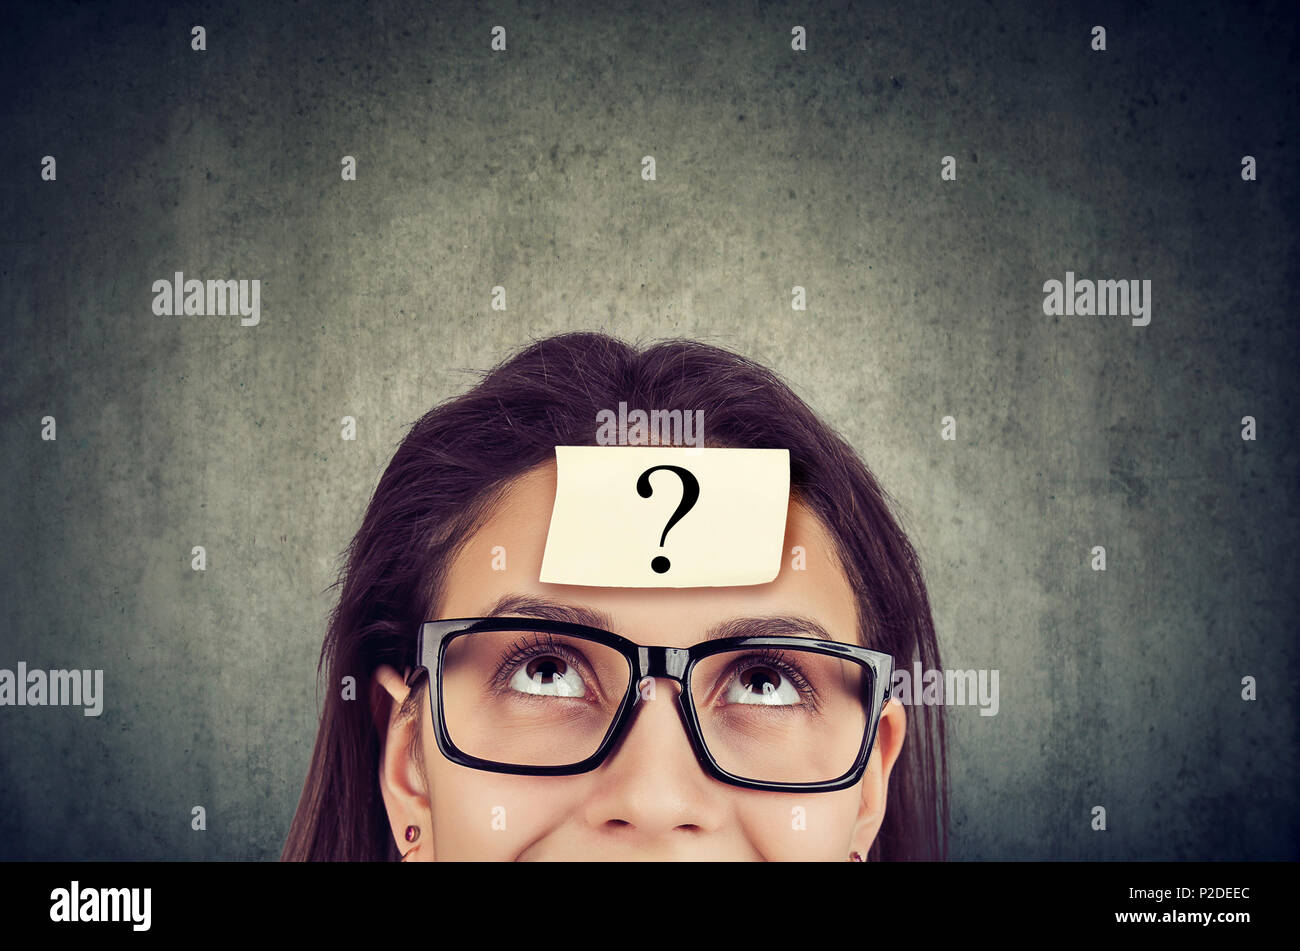 Young woman wearing black glasses with question mark on forehead looking up. - Stock Image